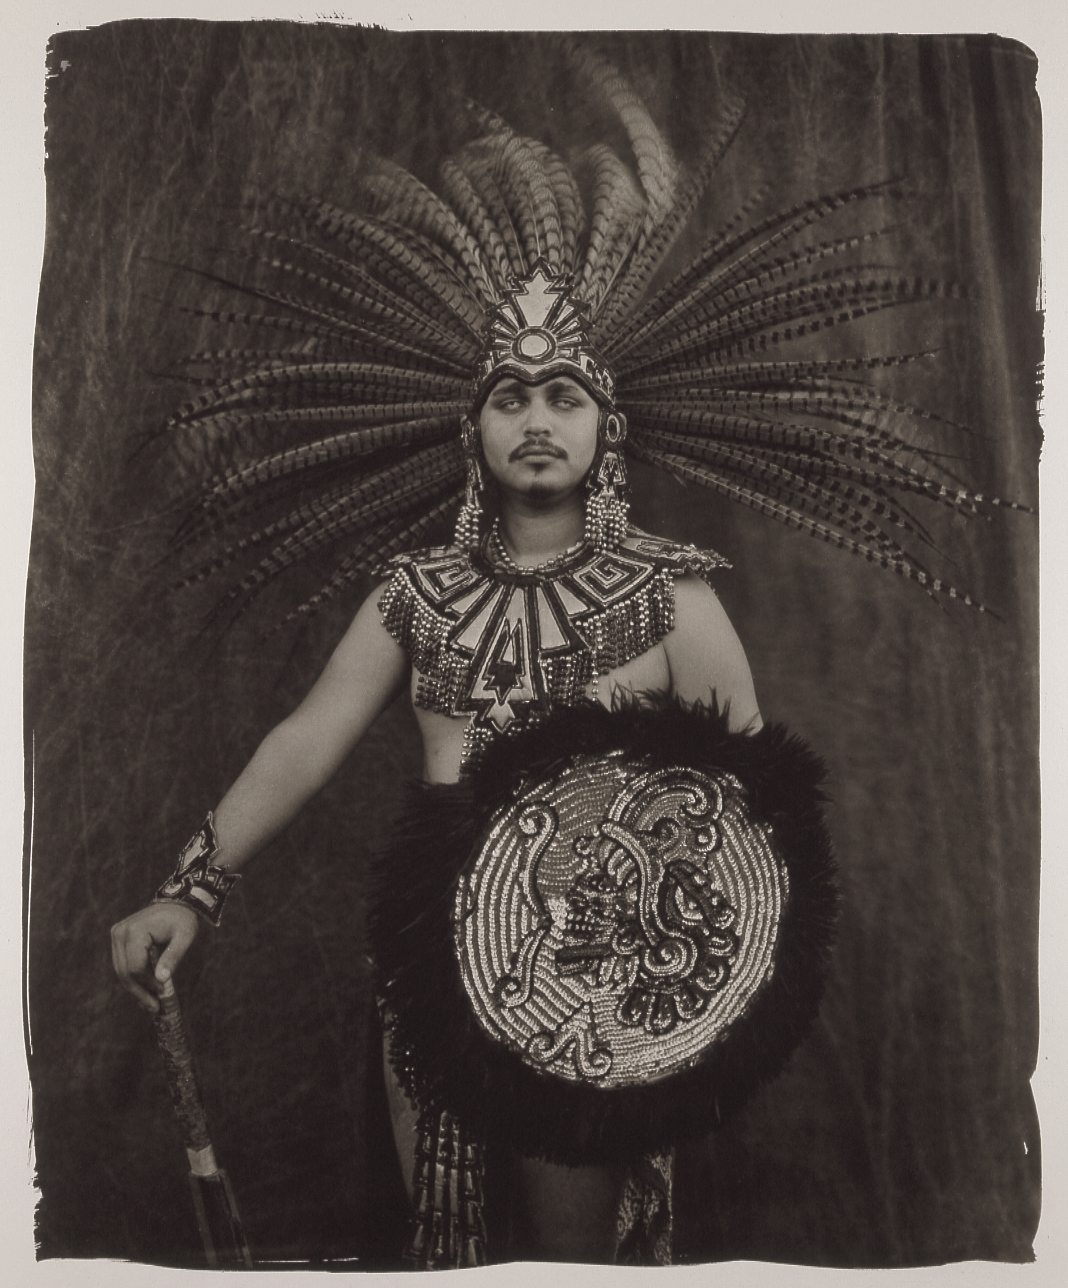 1417-Aztec Dancer.jpg